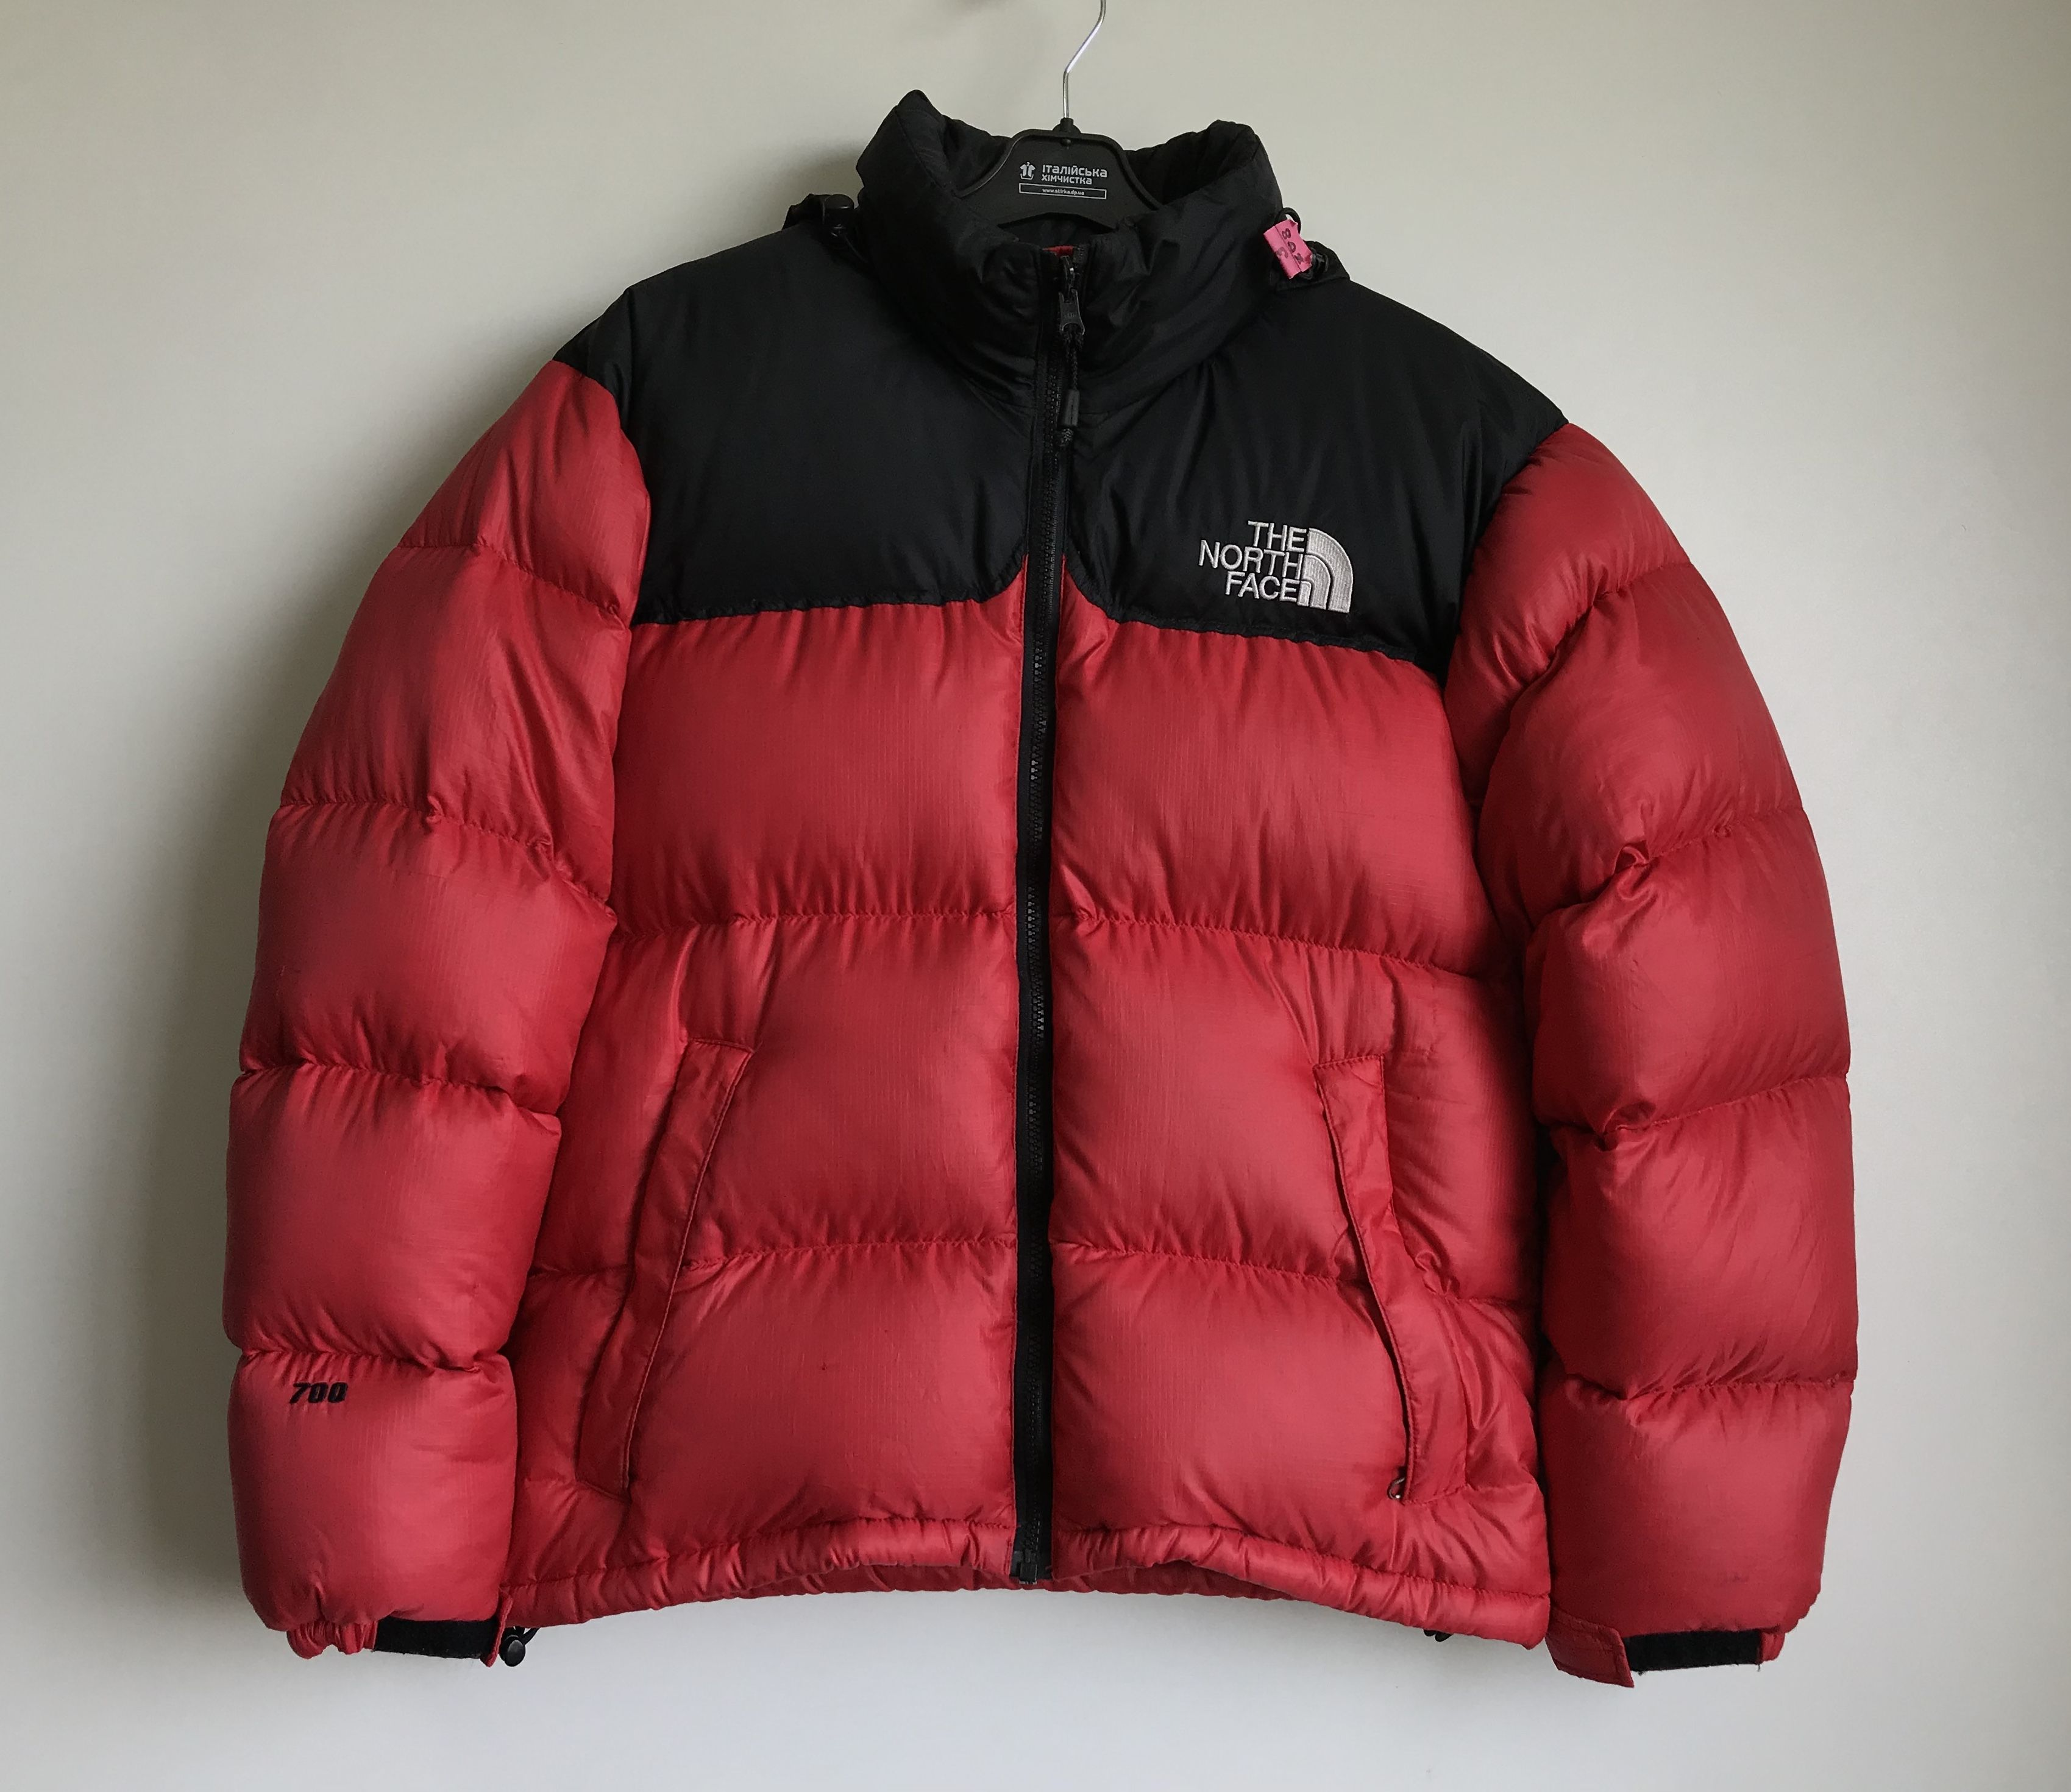 Vintage The North Face 700 Down Nuptse Puffer Jacket Color Red Size S Puffy 90s Ebay North Face 700 Puffer The North Face [ 2941 x 3398 Pixel ]